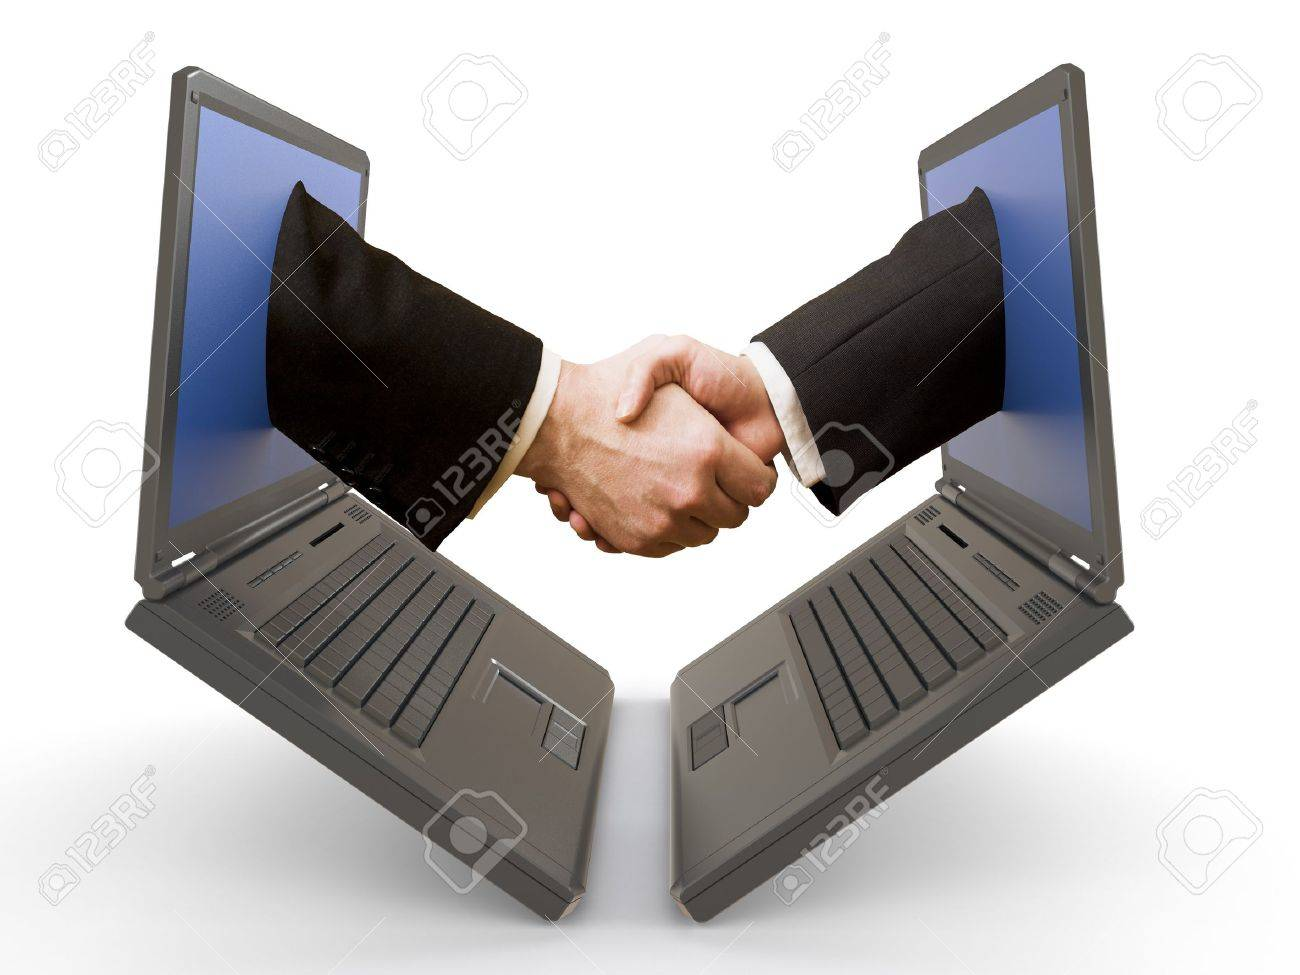 handshake emerging from two laptop&acute,s screens. Stock Photo - 4356324